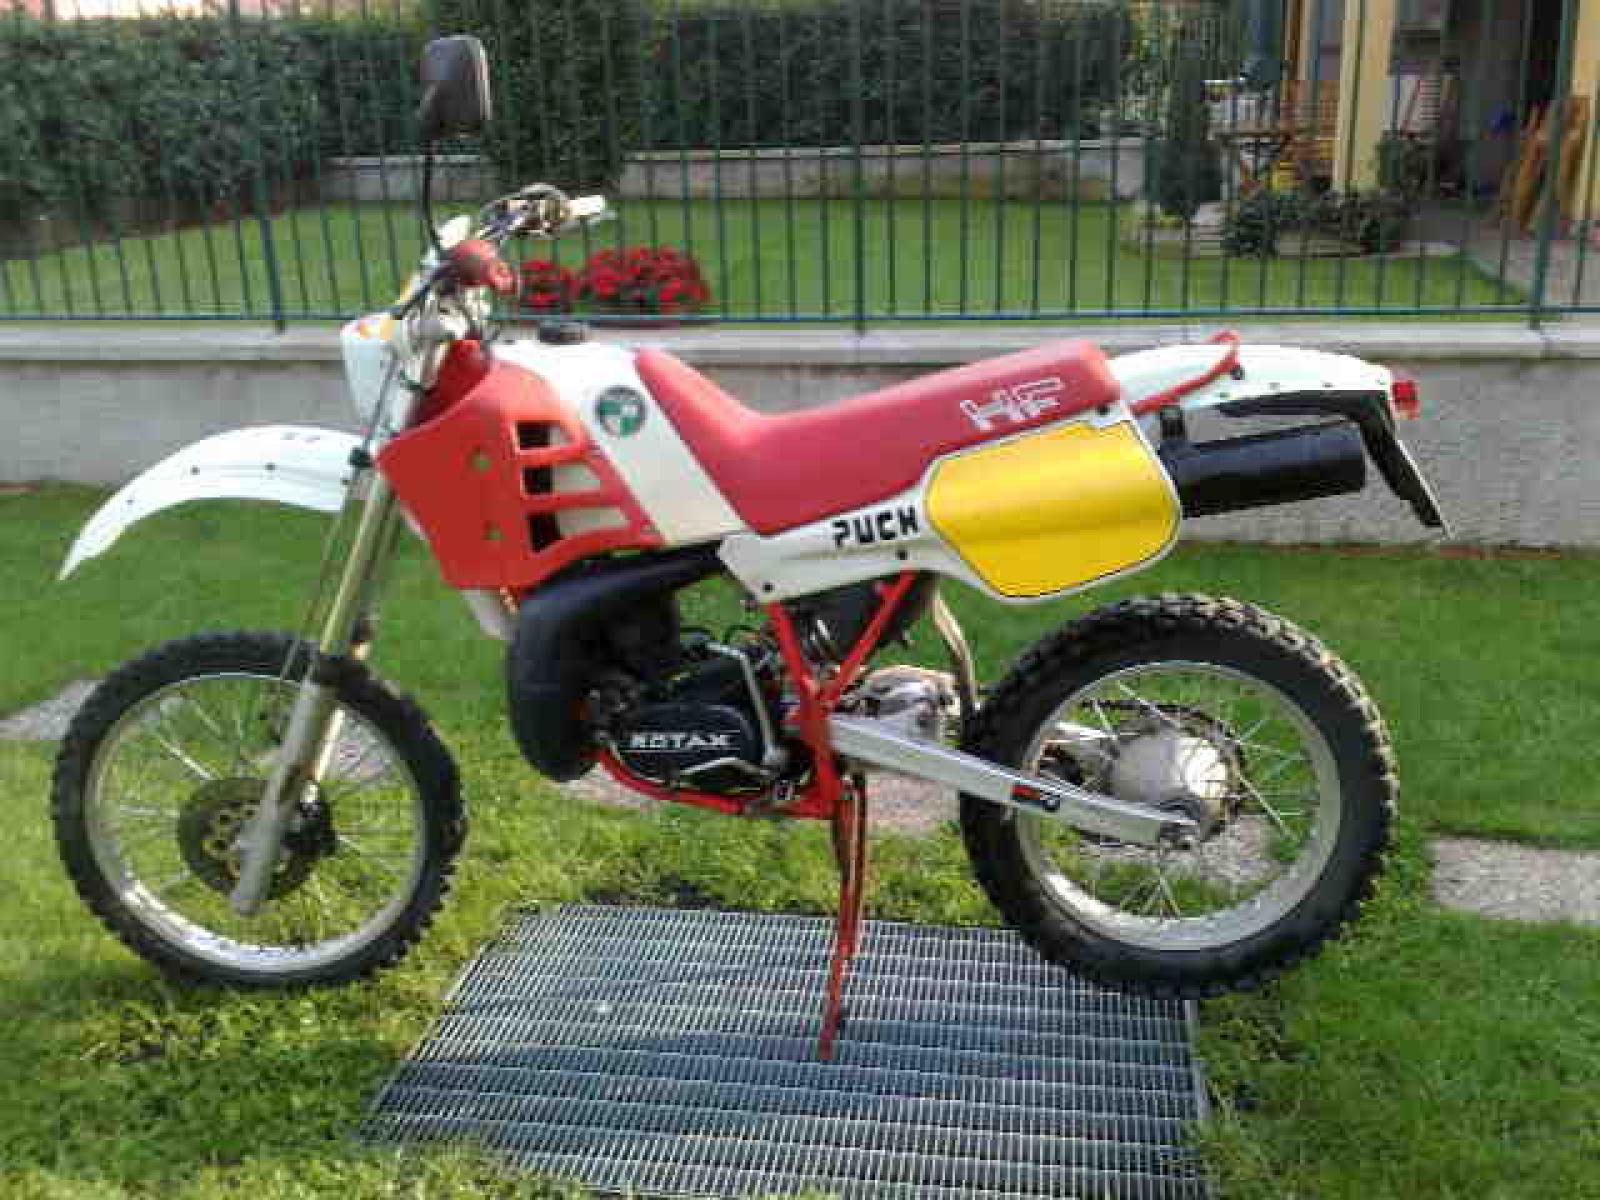 Puch GS 125 HF 1986 images #121553